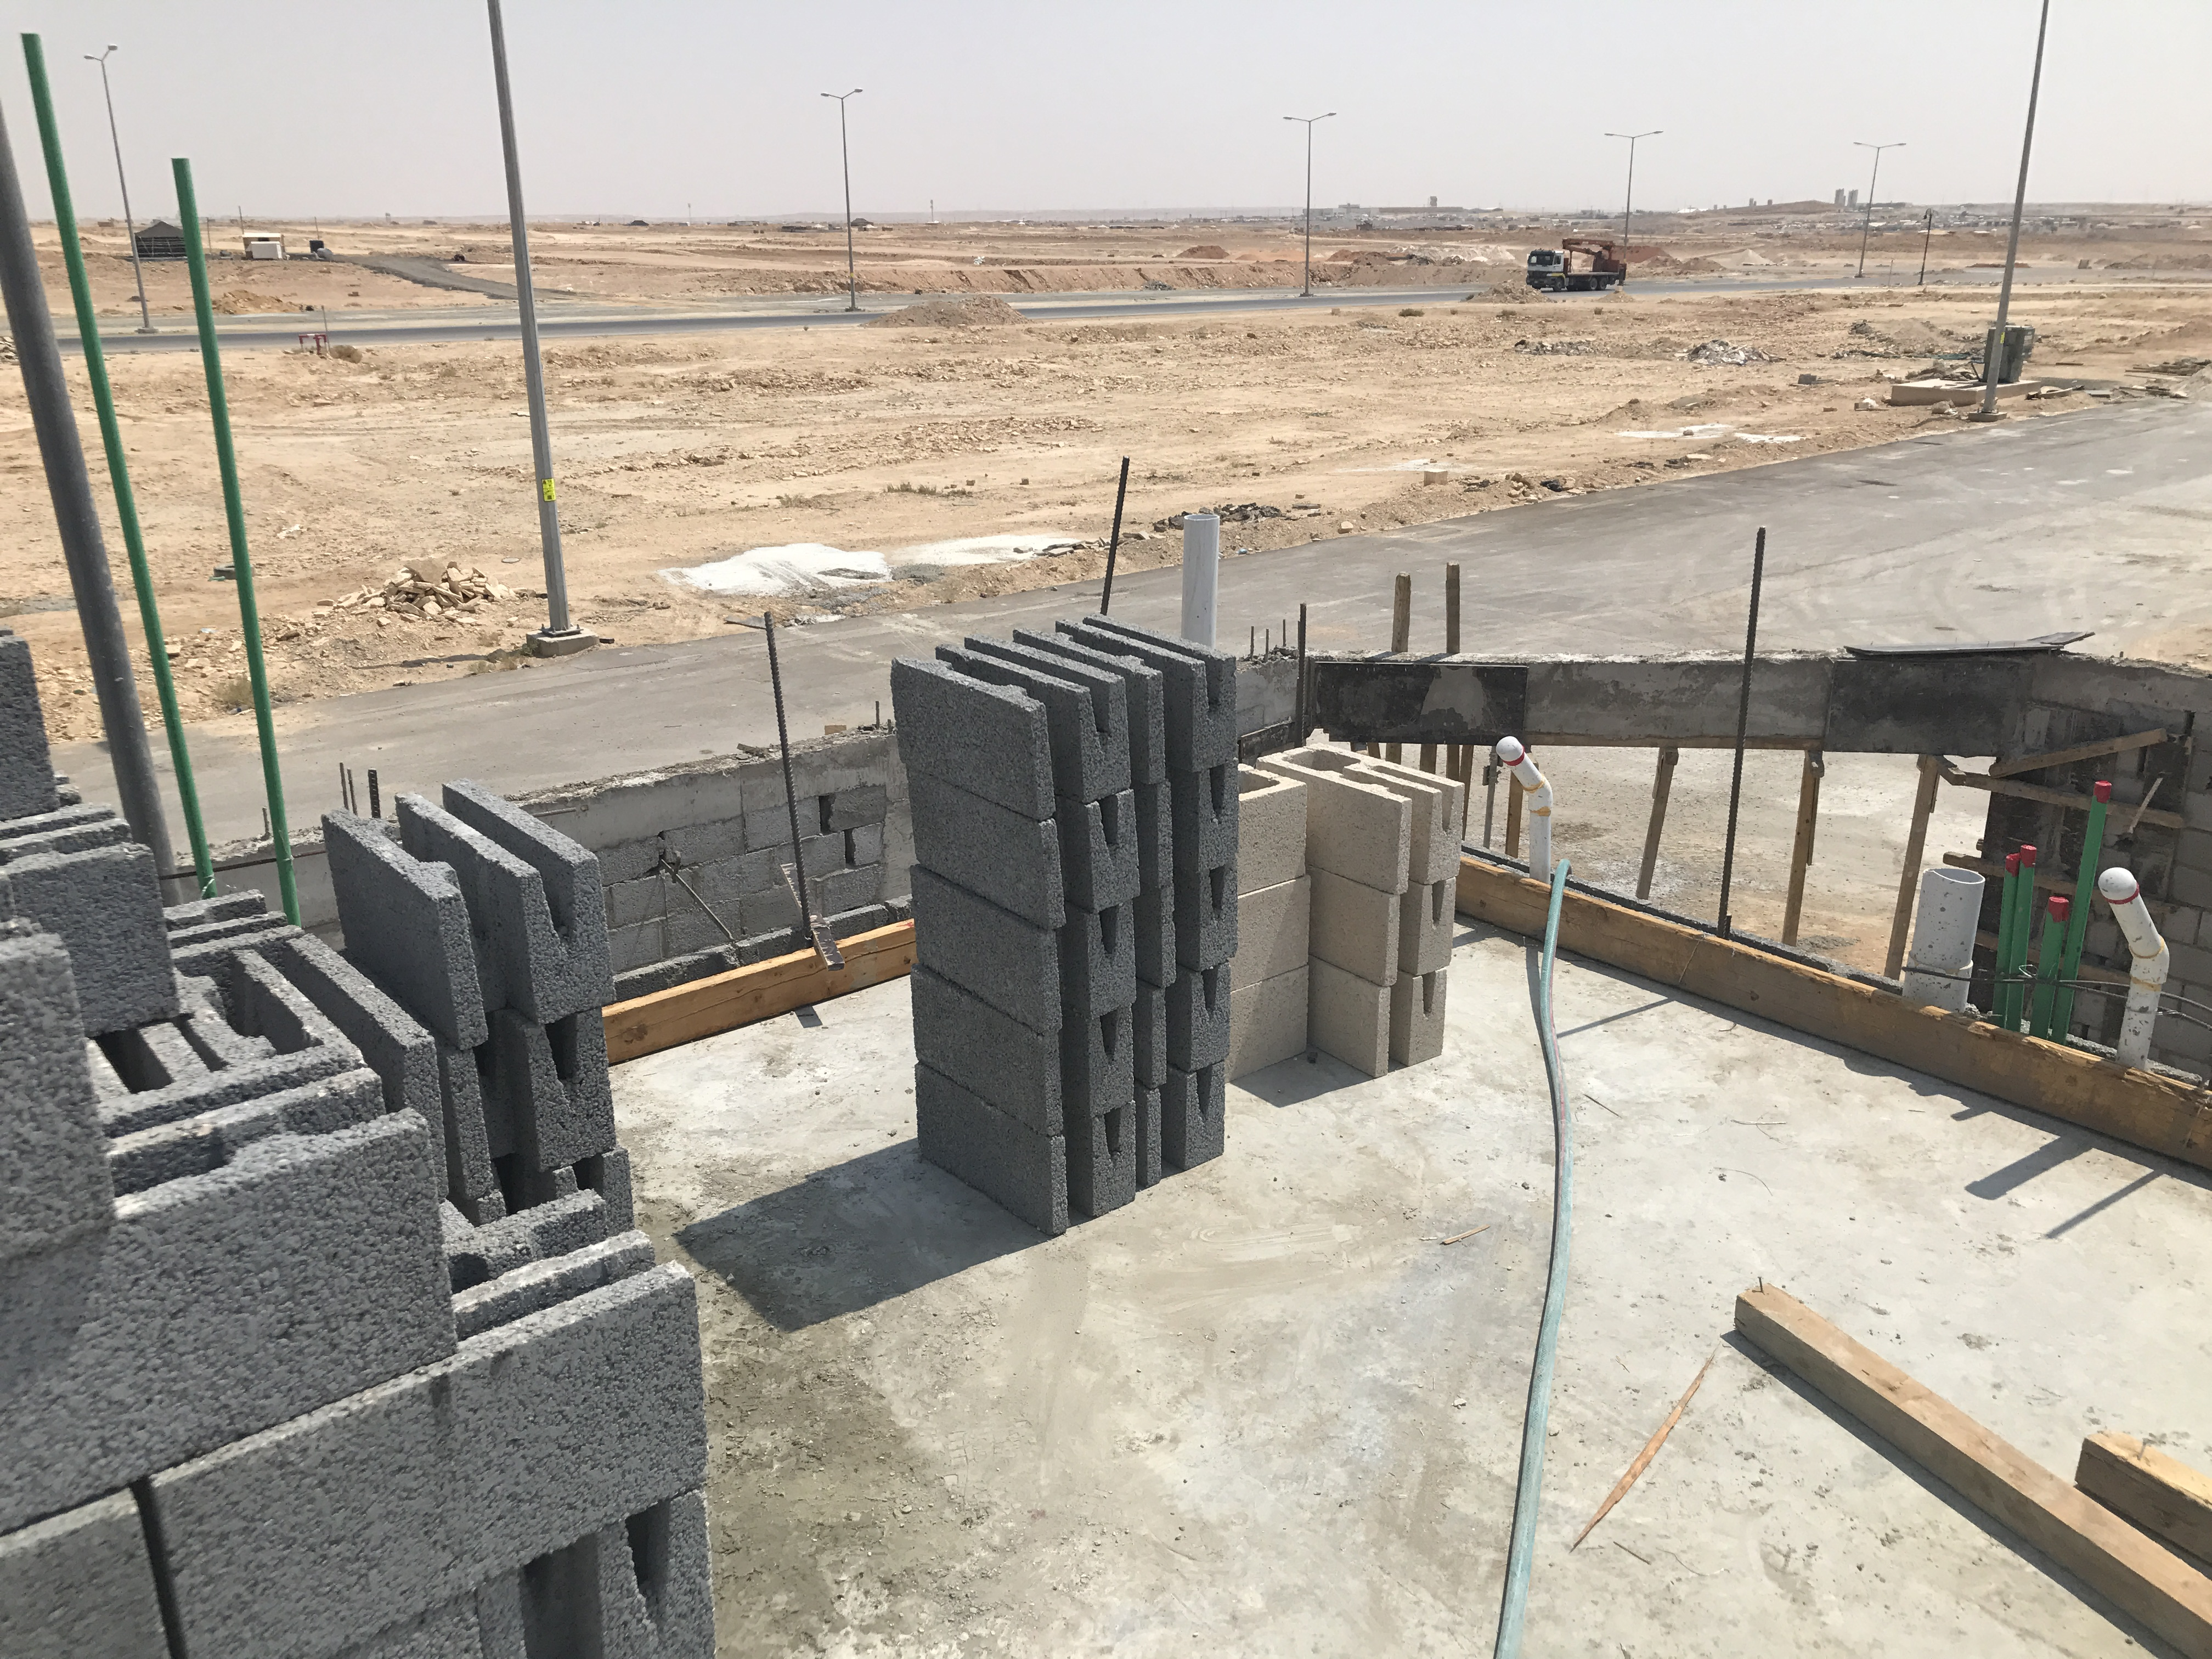 Perfect The Corner Blocks Are Also Stocked So That The Mason Is Not Delayed In Any  Way. Production Is Key When It Comes To Laying Block So Proper Quantities,  ...